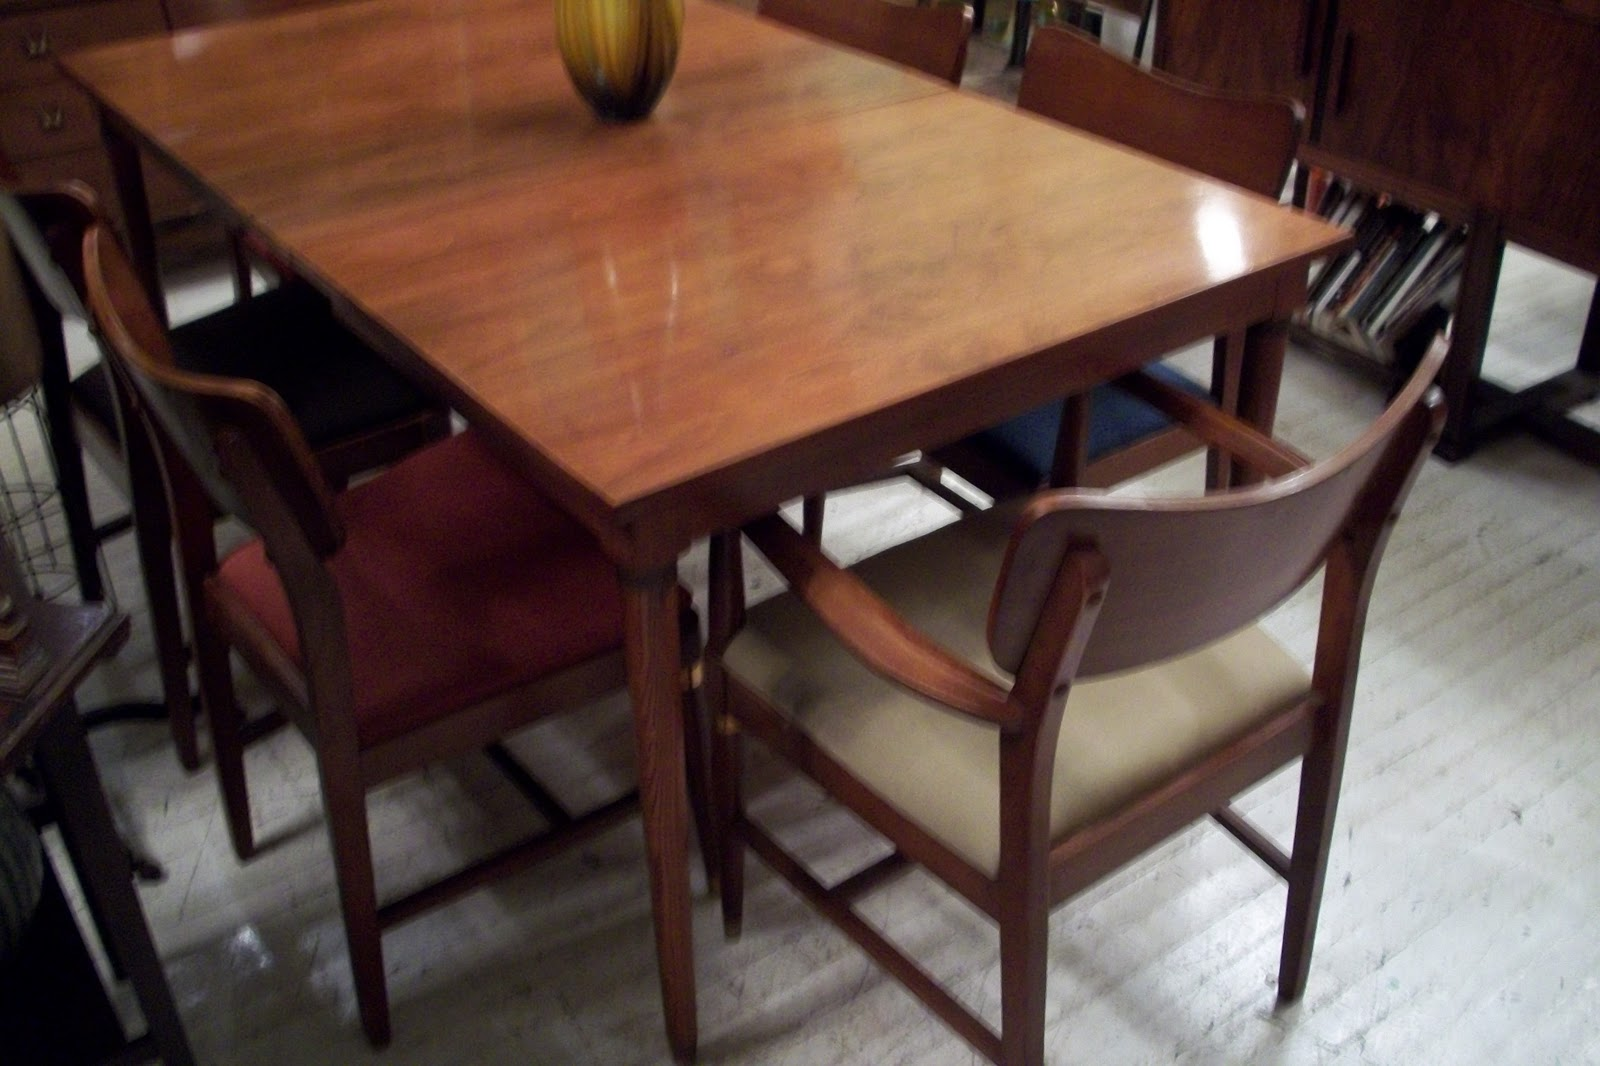 An Orange Moon Sears Roebuck Mid Century Modern Dining Room Set